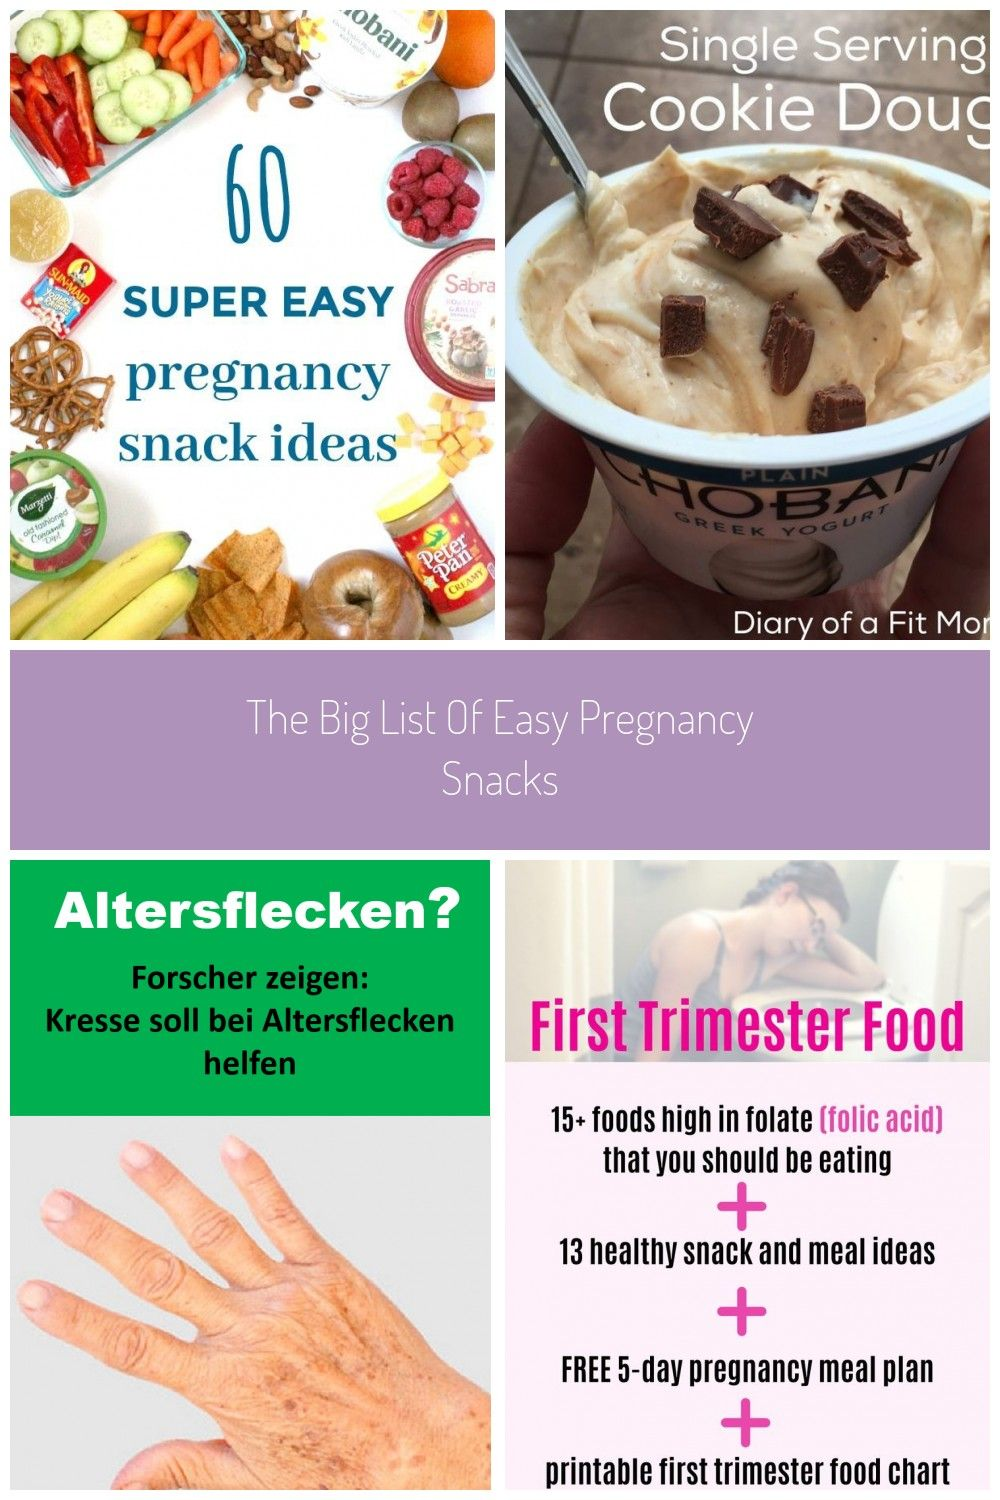 60 snack ideas for pregnant mamas who are looking for